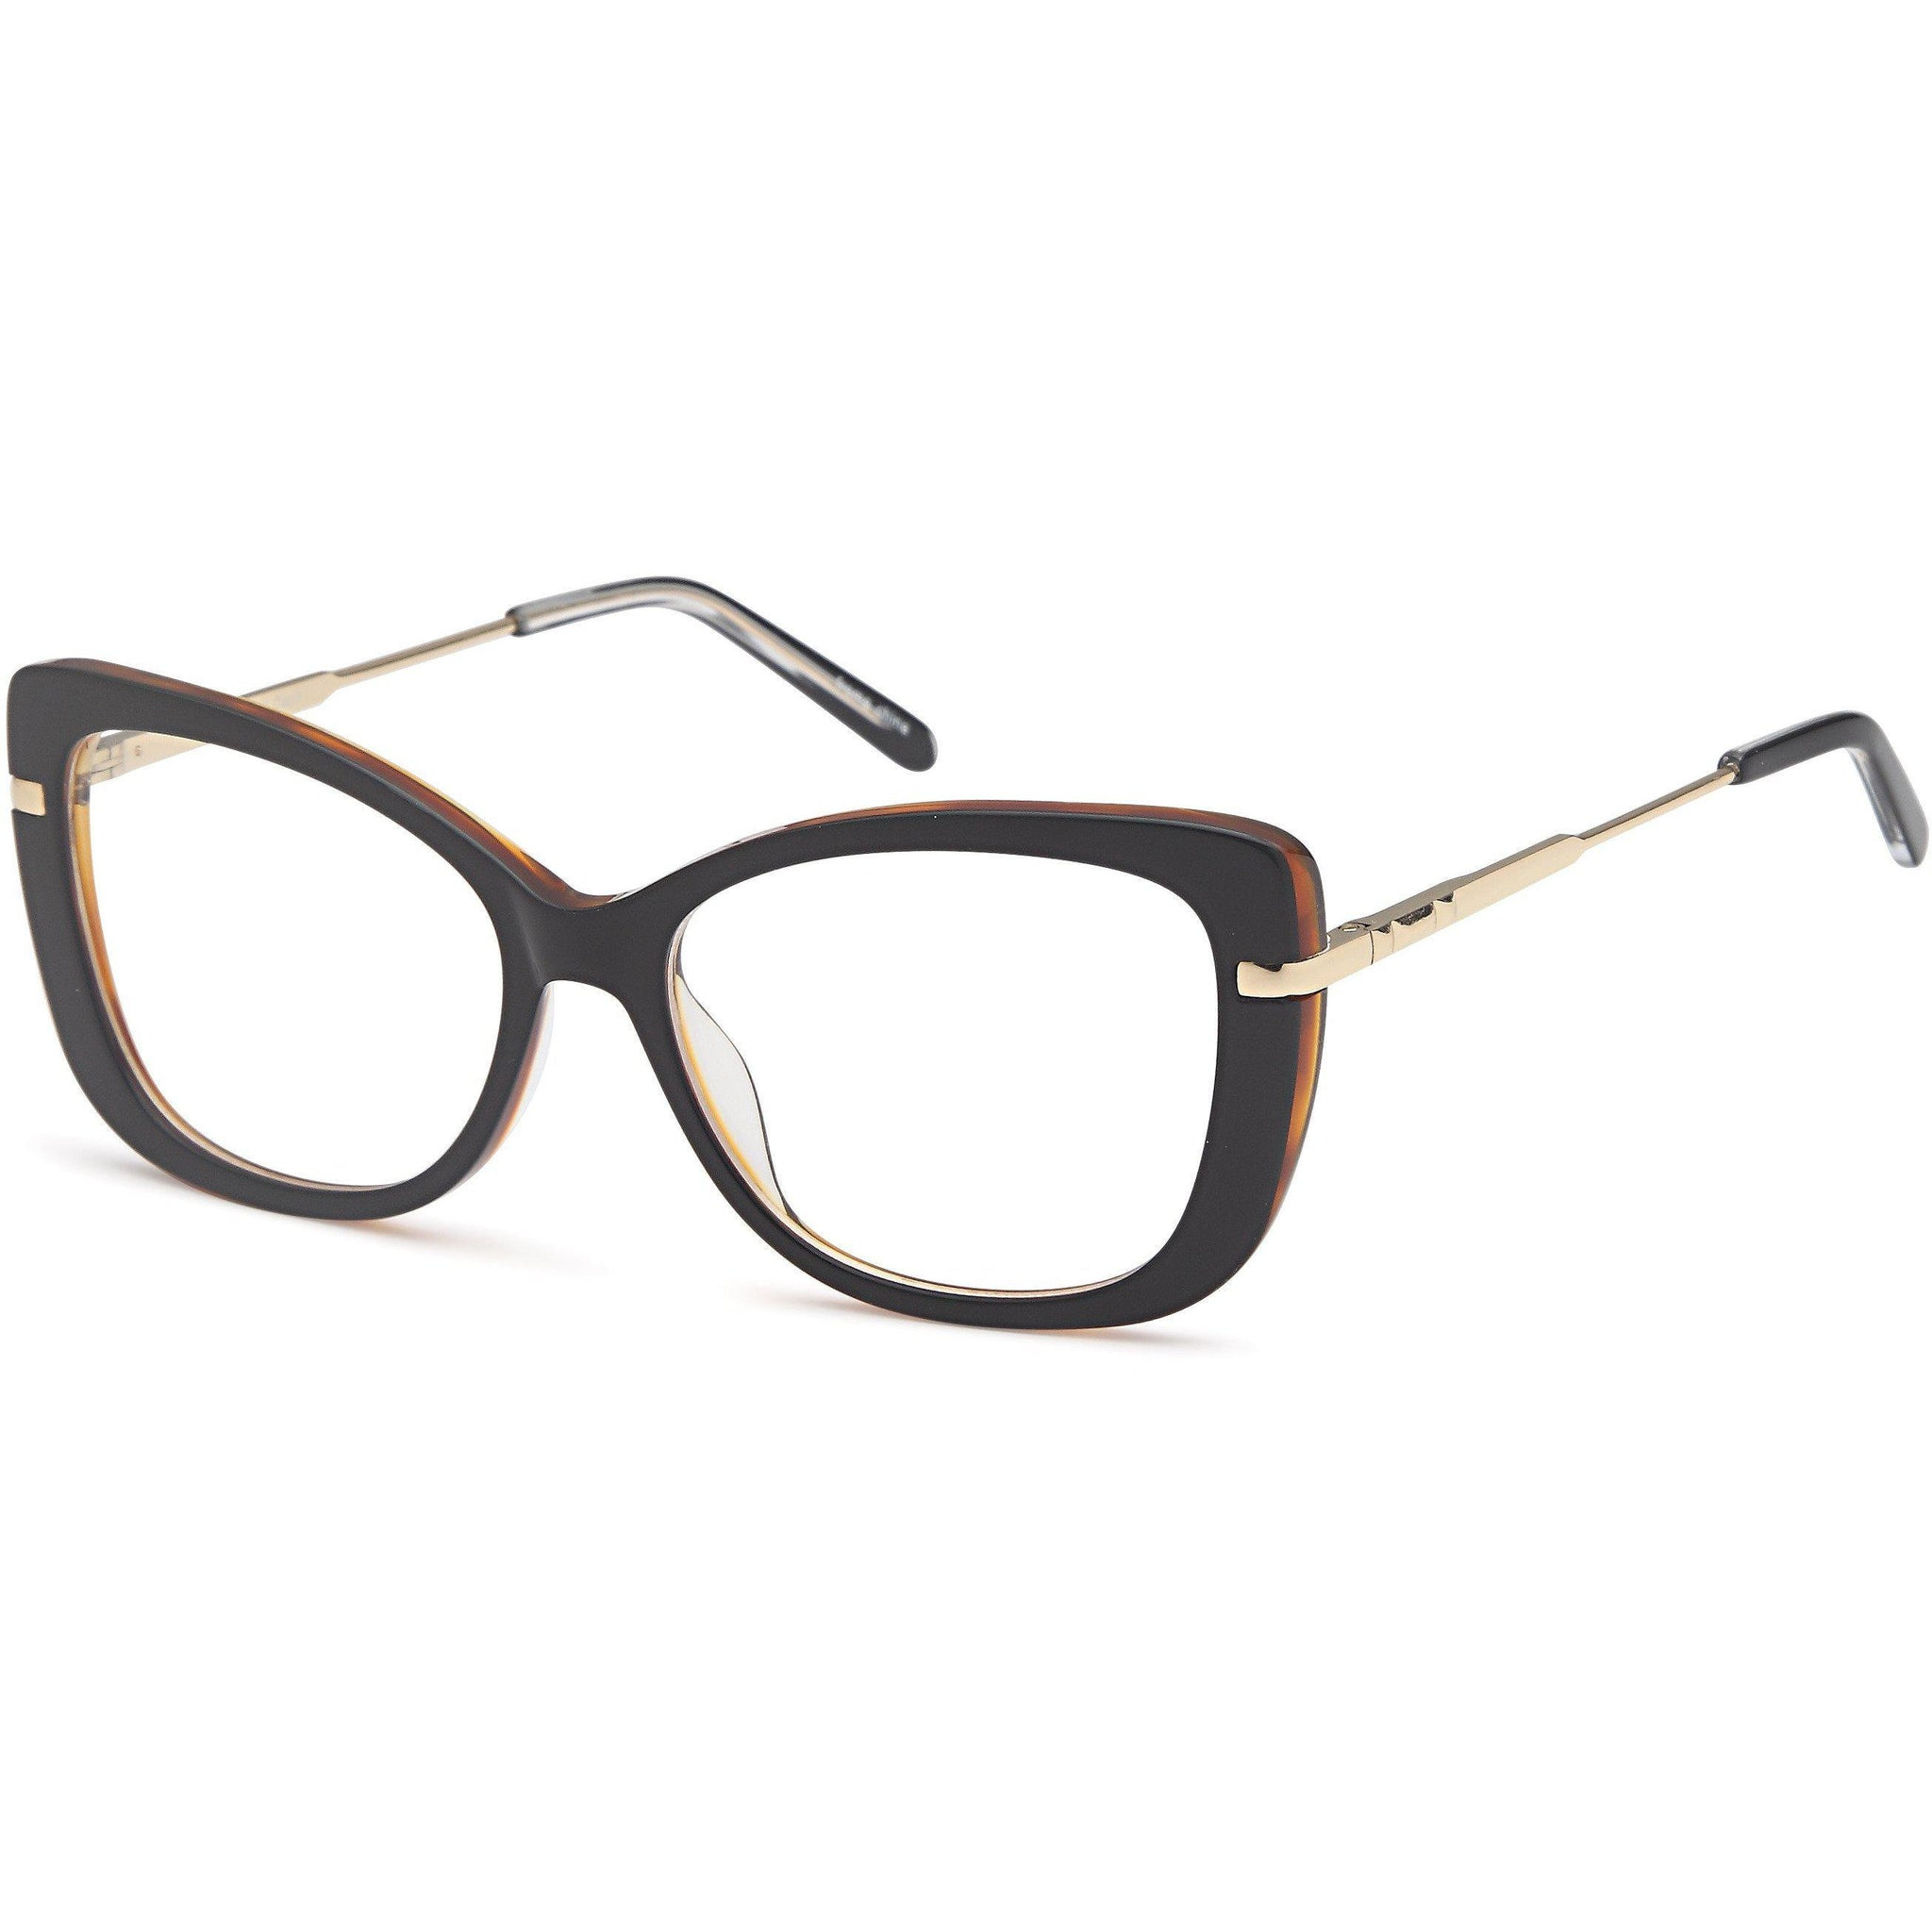 Di Caprio Prescription Glasses DC 162 Eyeglasses Frame - timetoshade